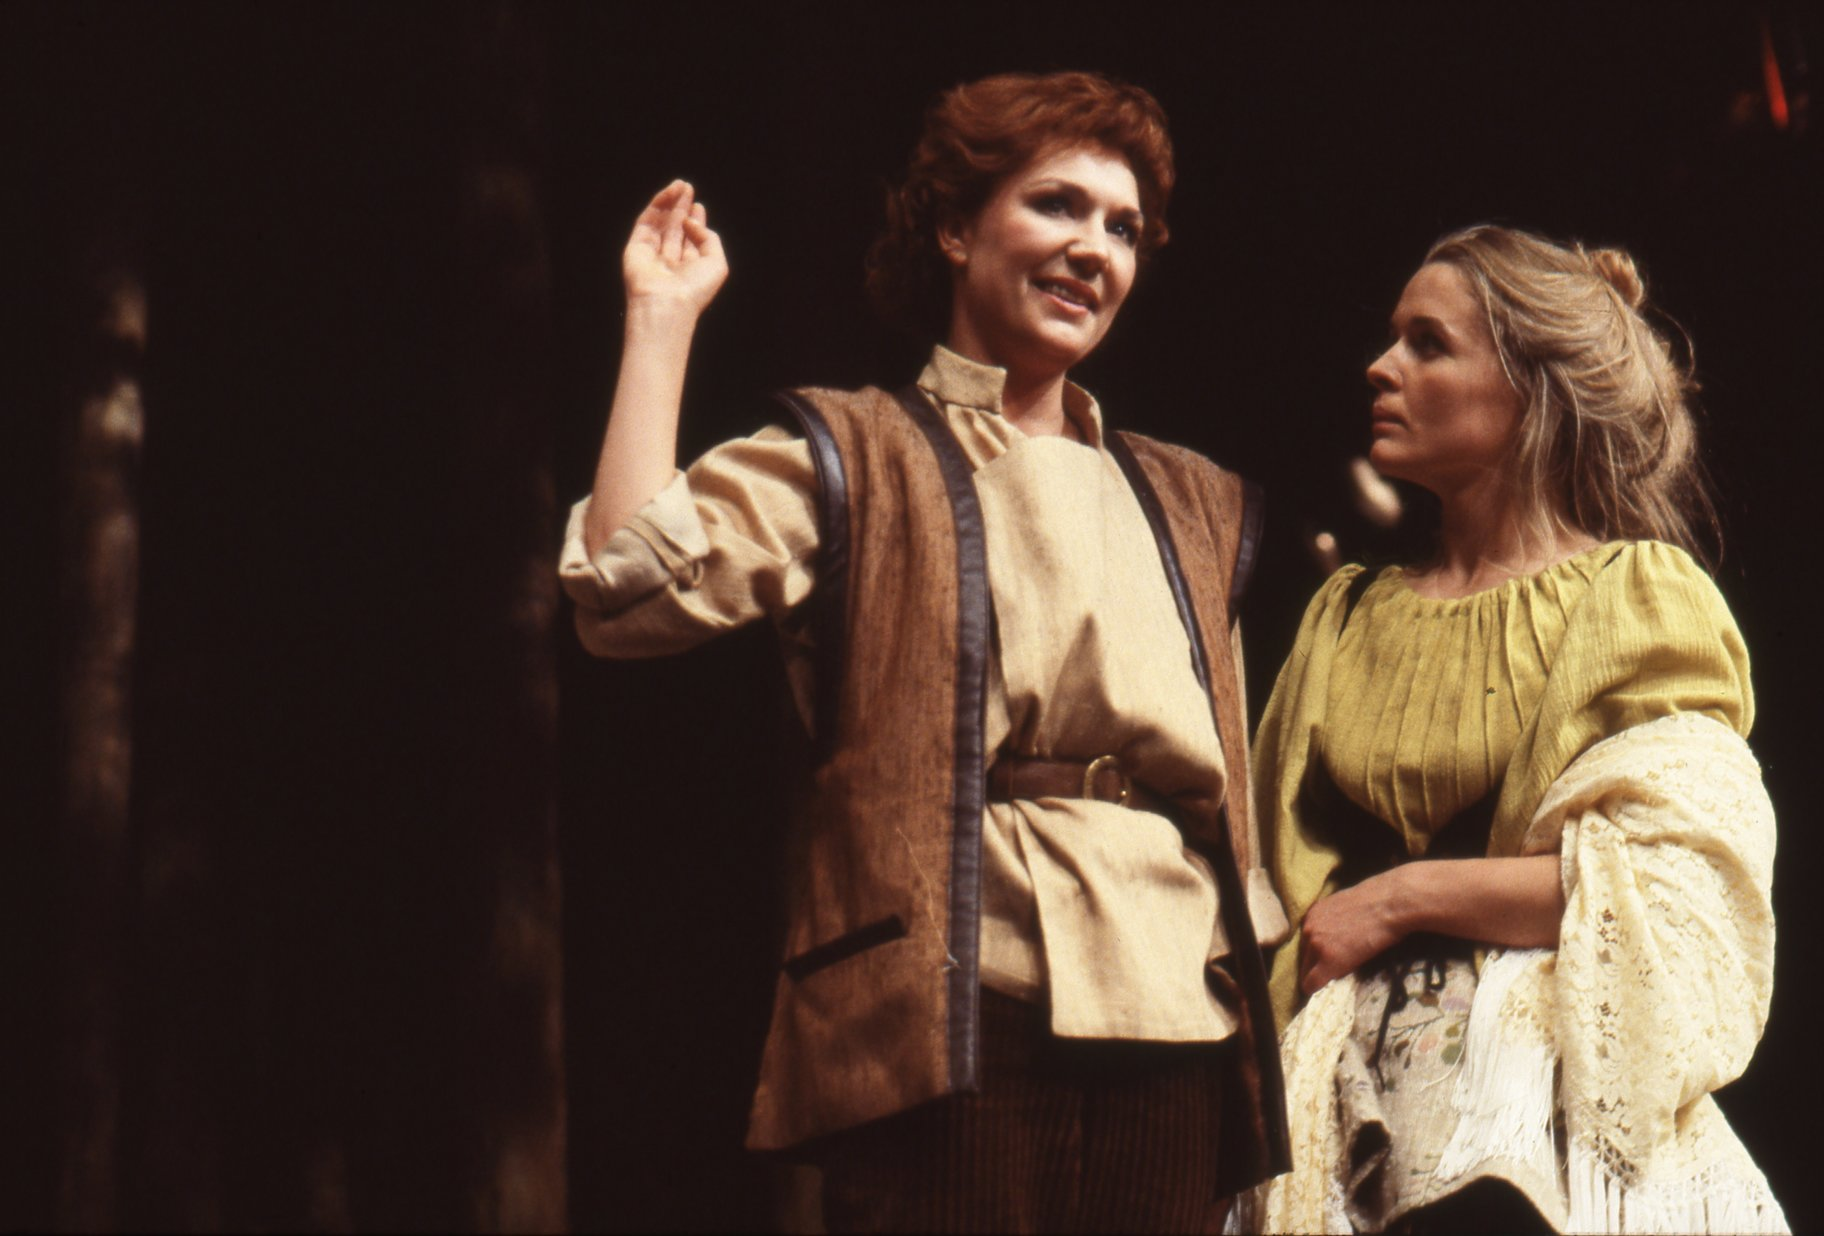 Rosalind and Celia disguised as Ganymede and Aliena.